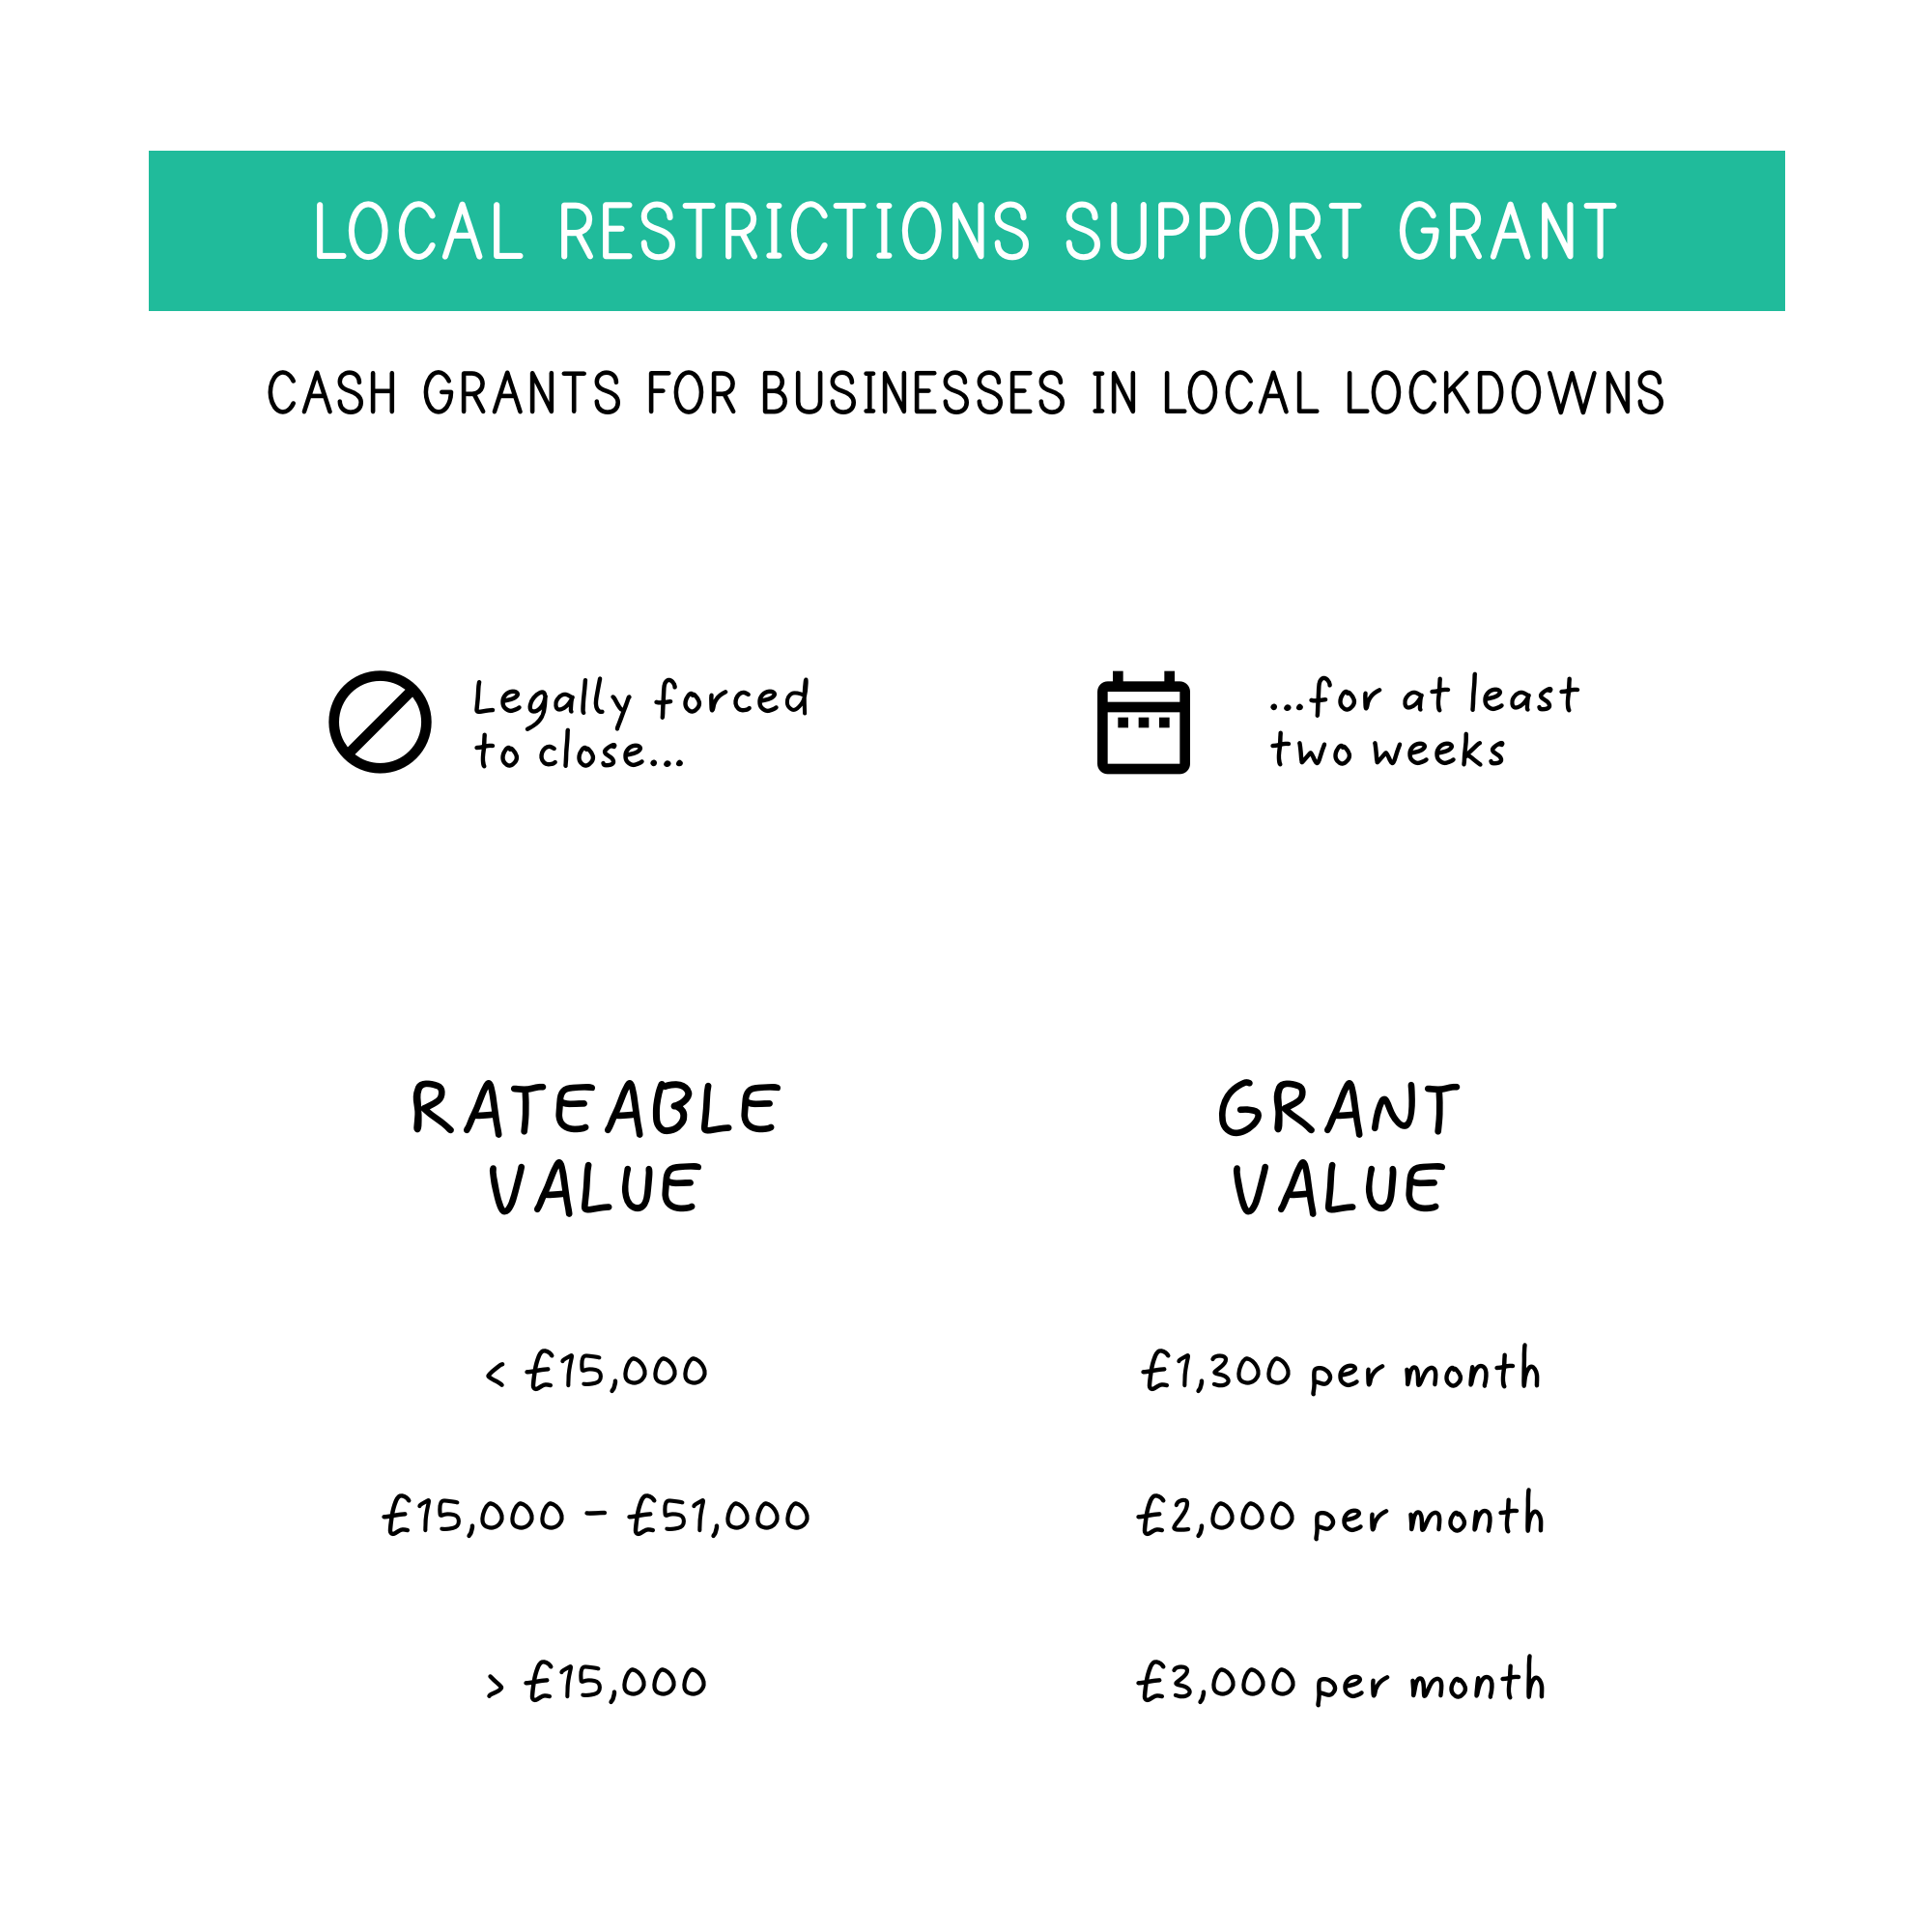 local-restrictions-support-grant-1